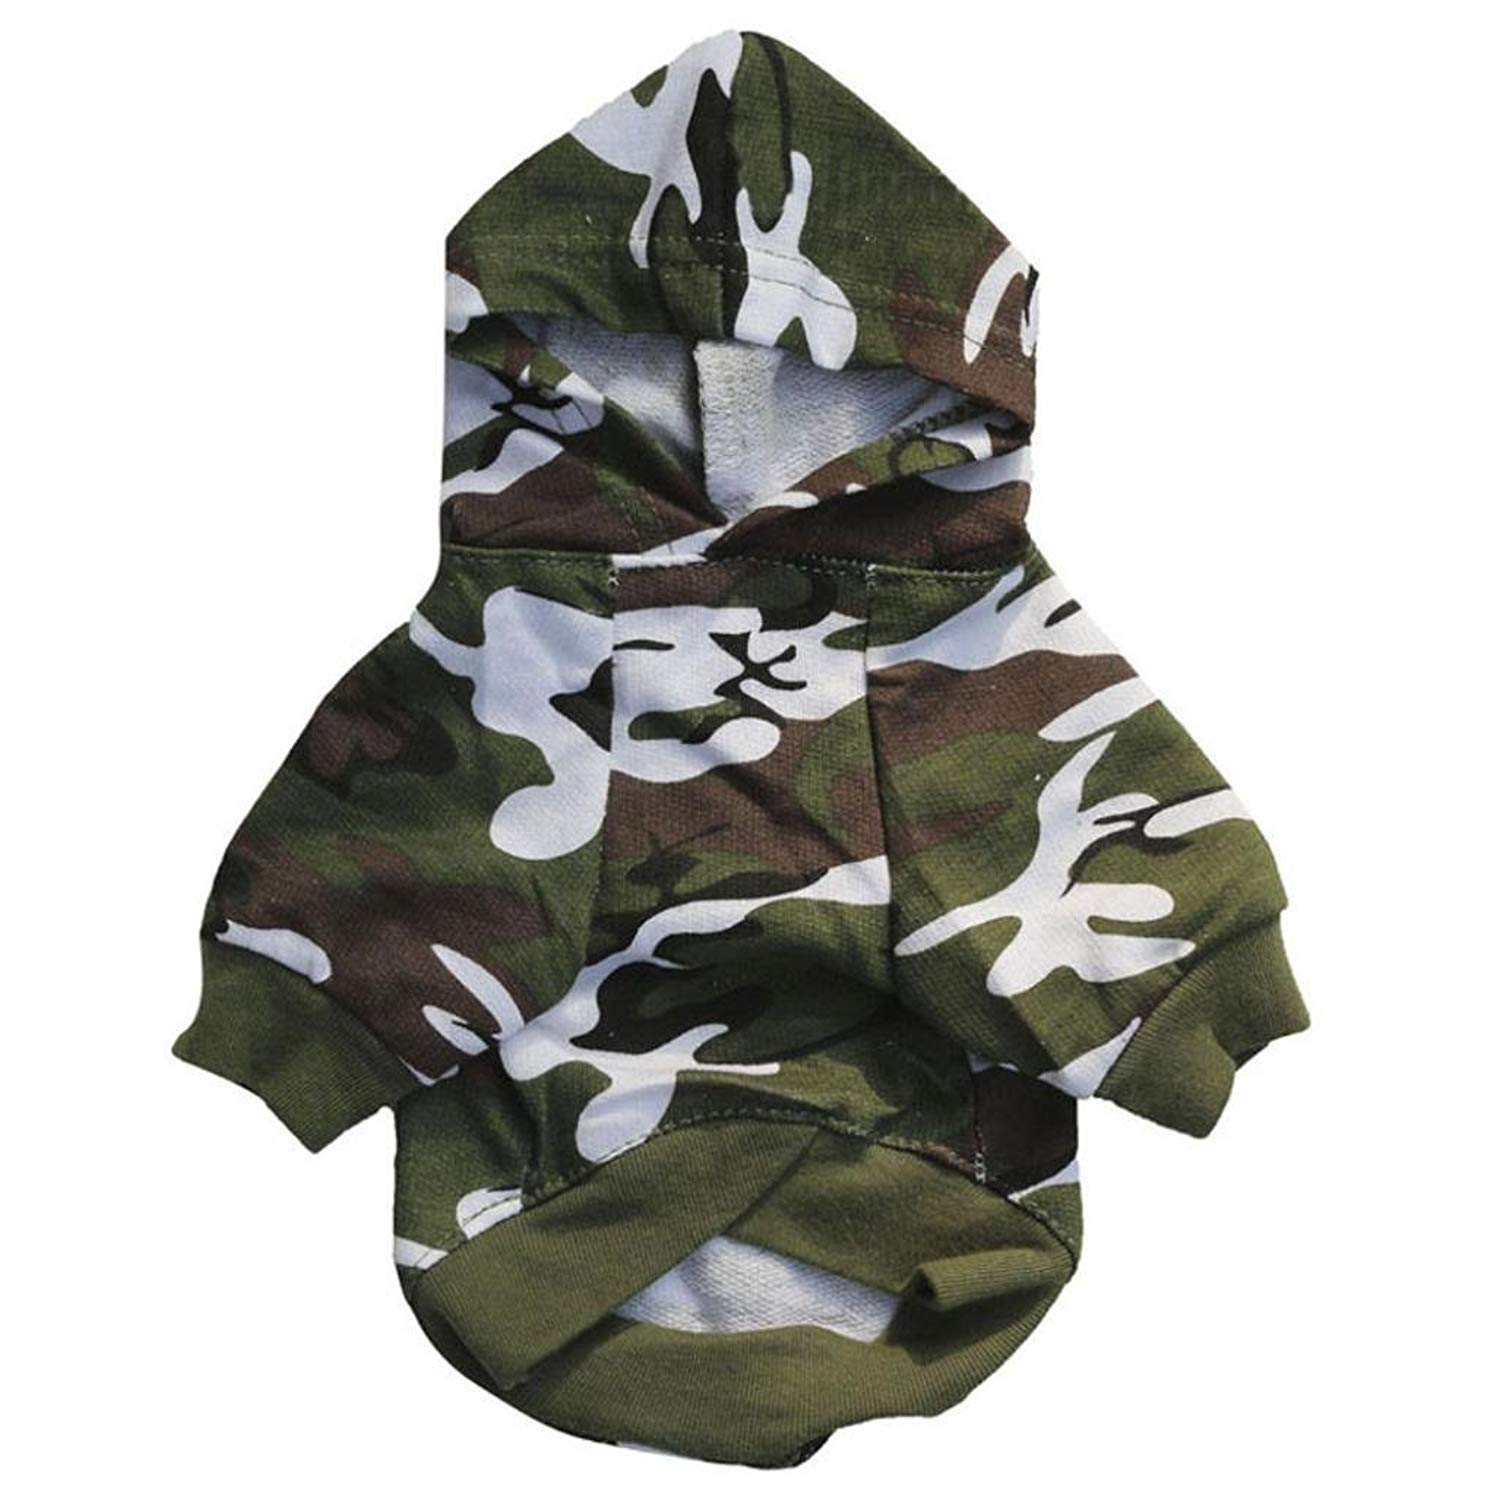 GONKOMA Puppy Pet Dog Clothes Sweatshirts Camo Hoodie T-Shirt Coat For Small Dog Puppy (M, Camouflage)